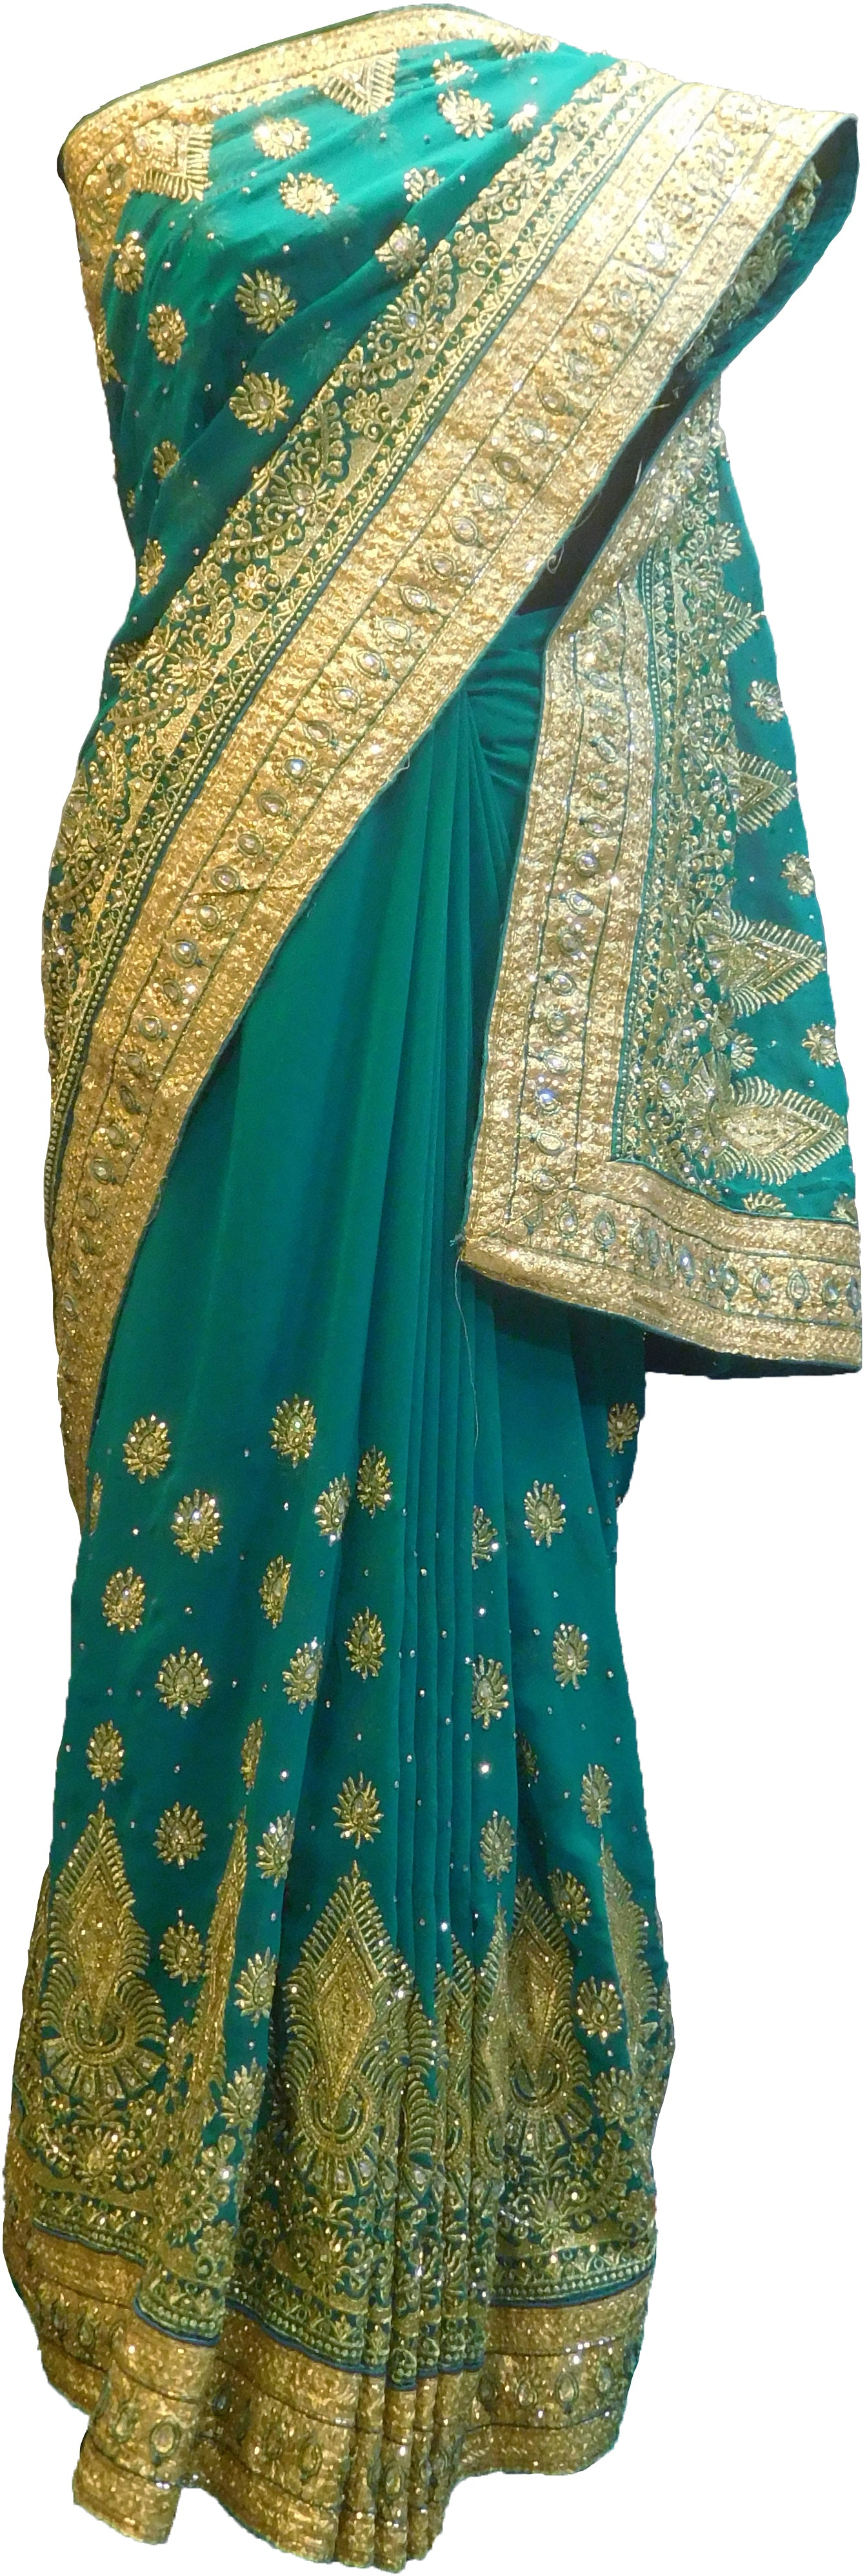 SMSAREE Turquoise Designer Wedding Partywear Georgette Stone Thread & Zari Hand Embroidery Work Bridal Saree Sari With Blouse Piece F383